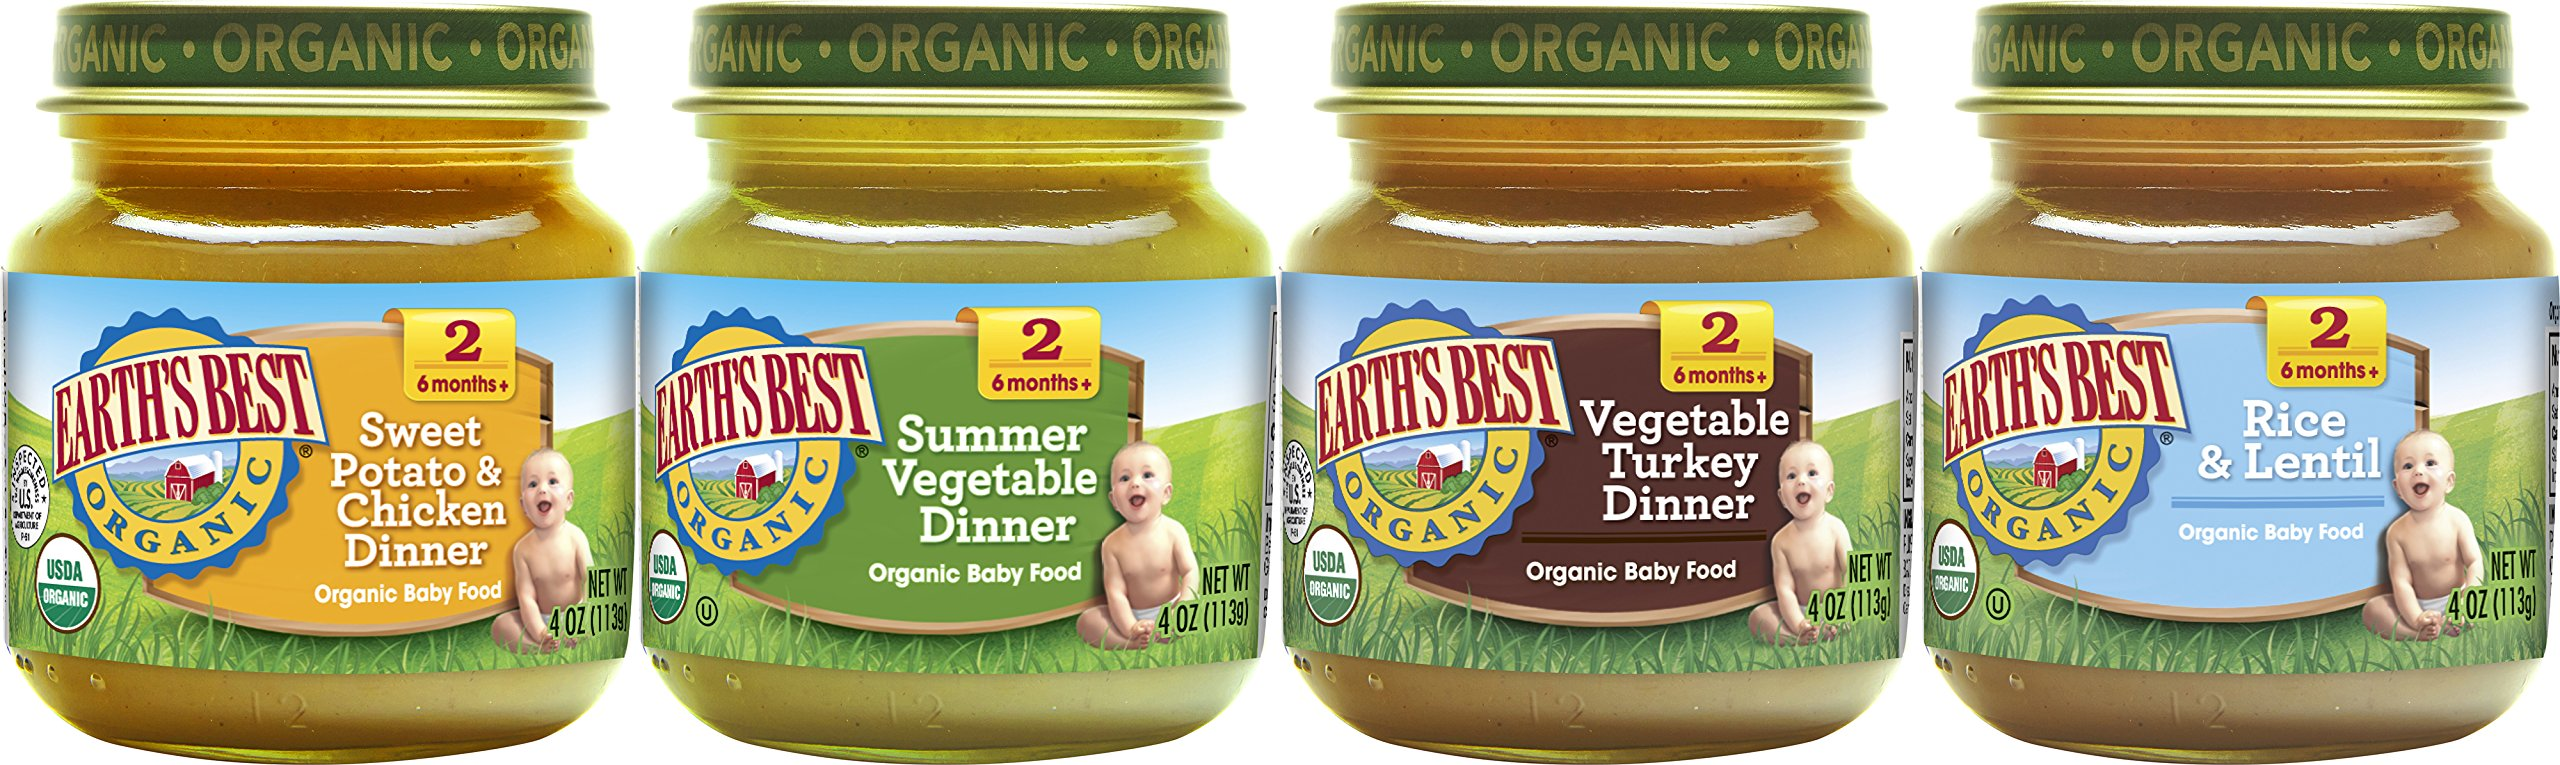 Earth's Best Organic Stage 2 Baby Food, Delicious Din Din Variety Pack, 4 oz. Jar (12 Count) by Earth's Best